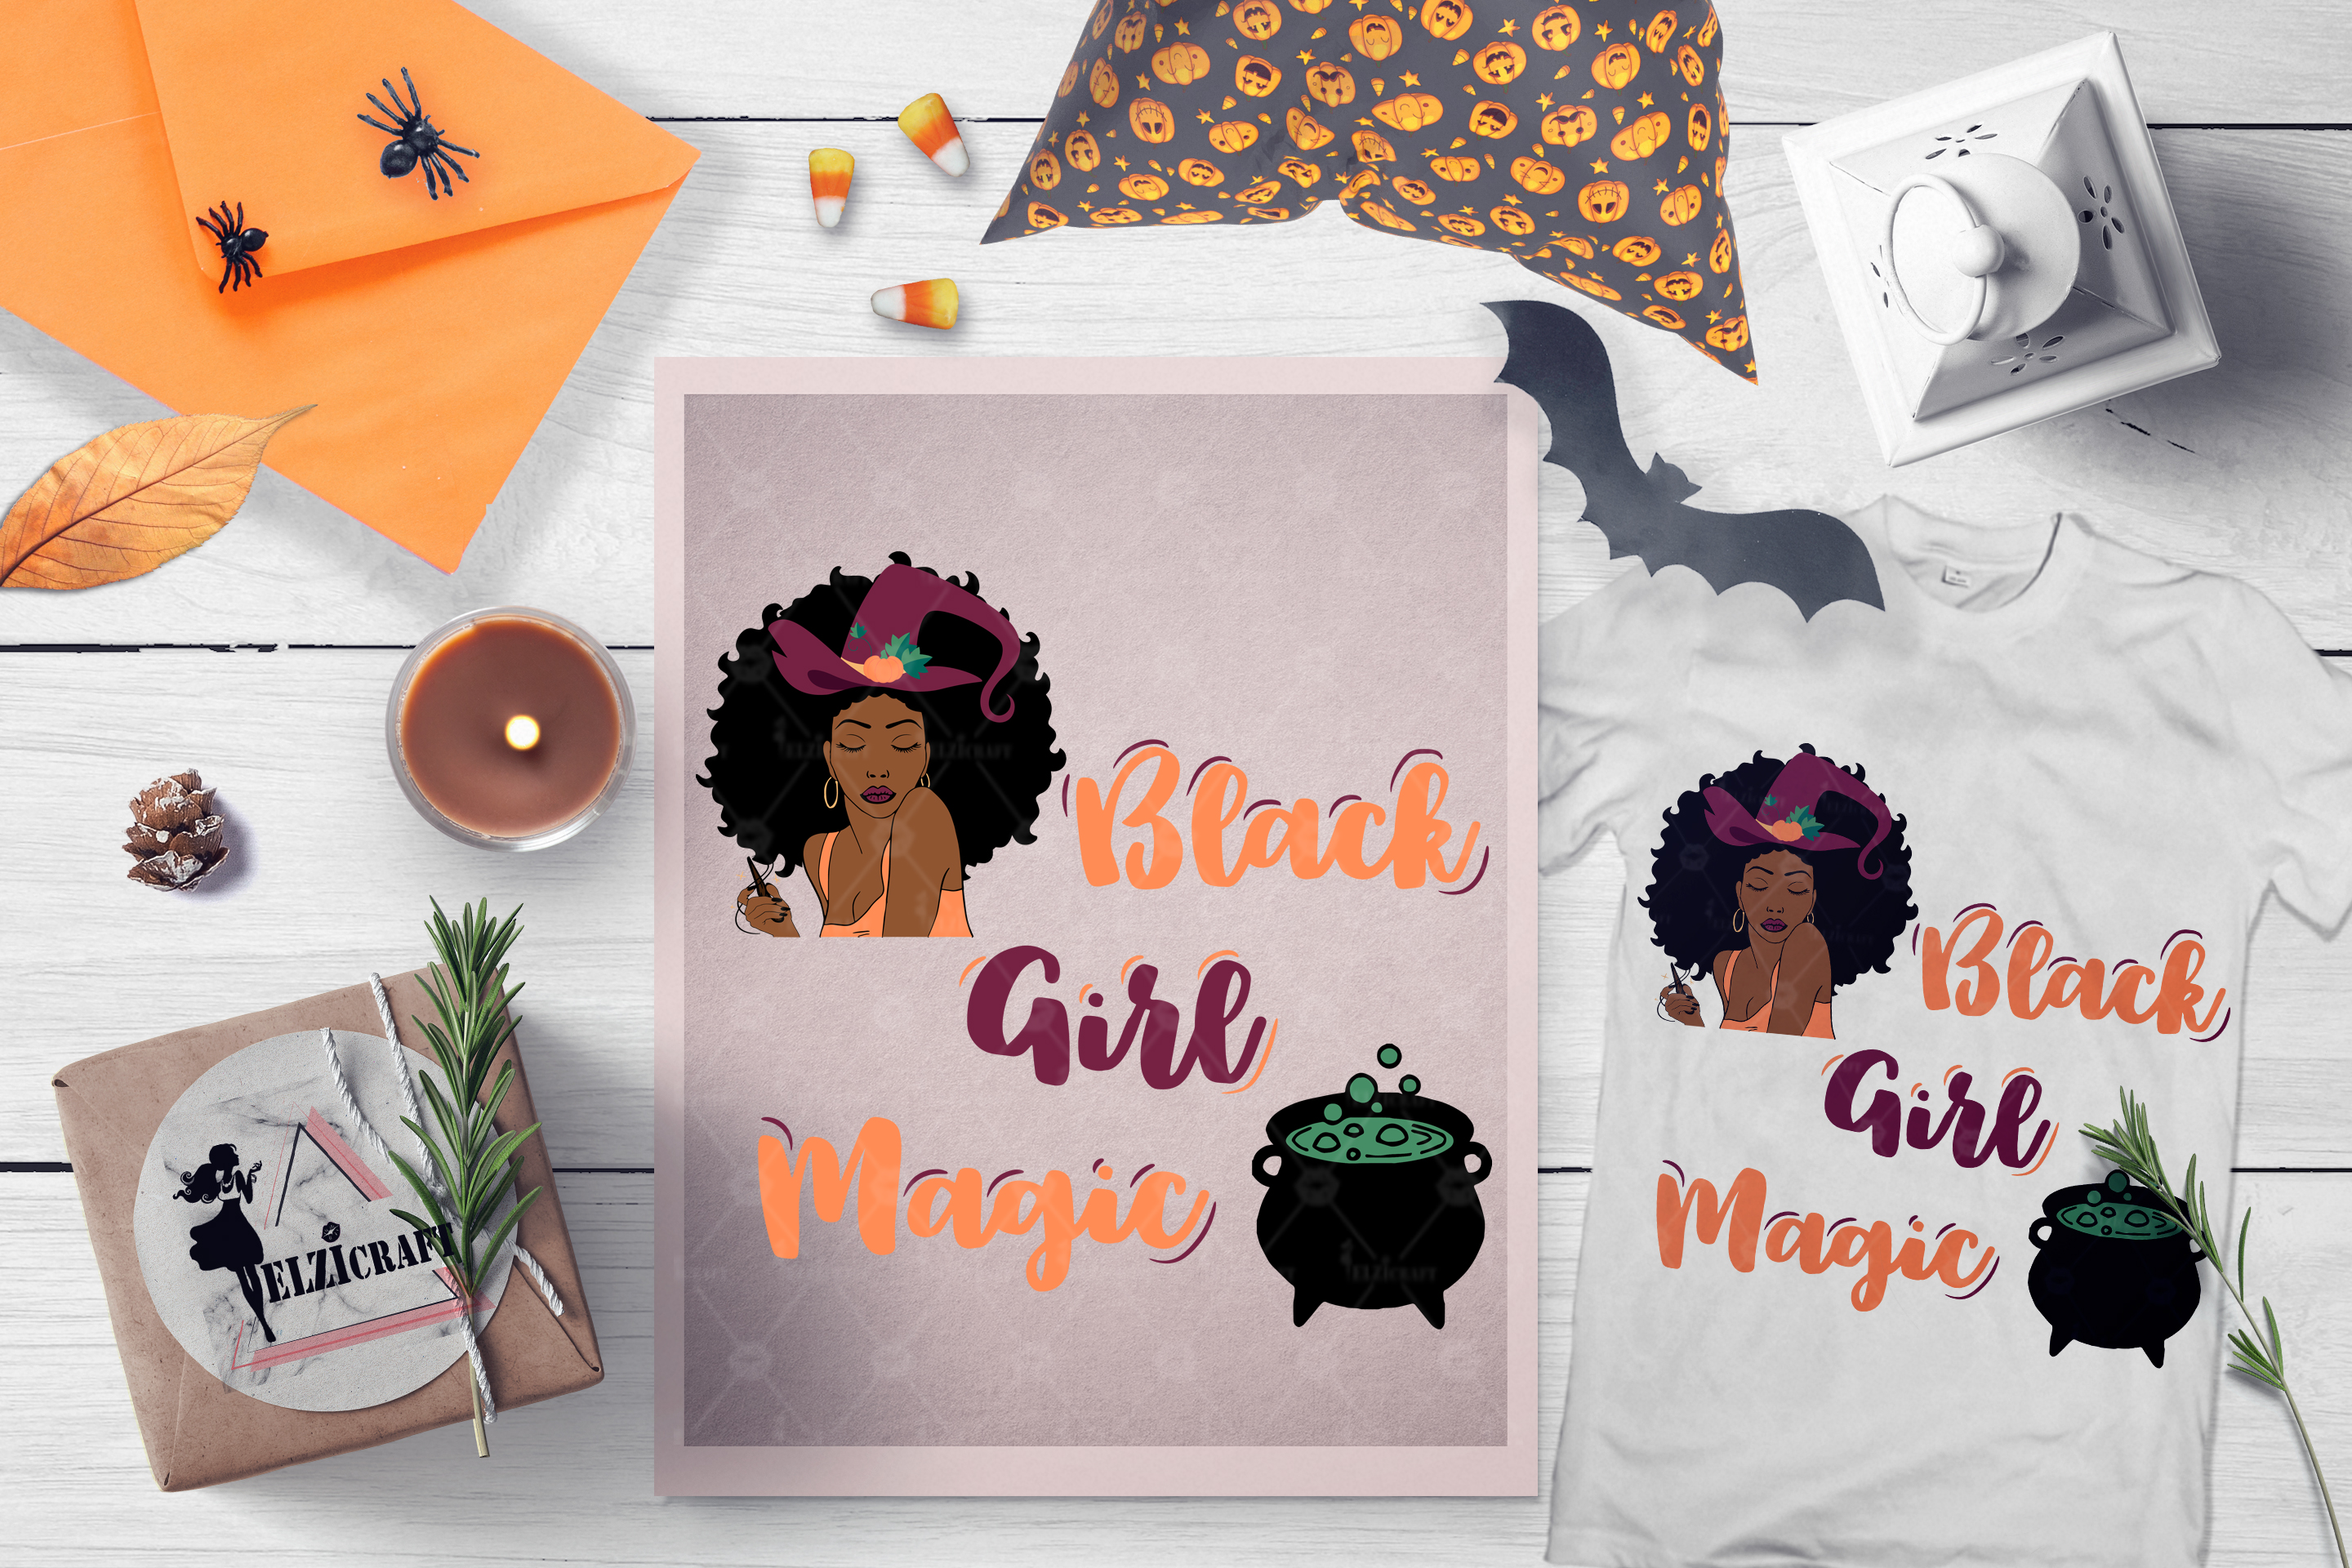 Halloween Black Girl Magic Afro Woman Witch SVG Cut File example image 1